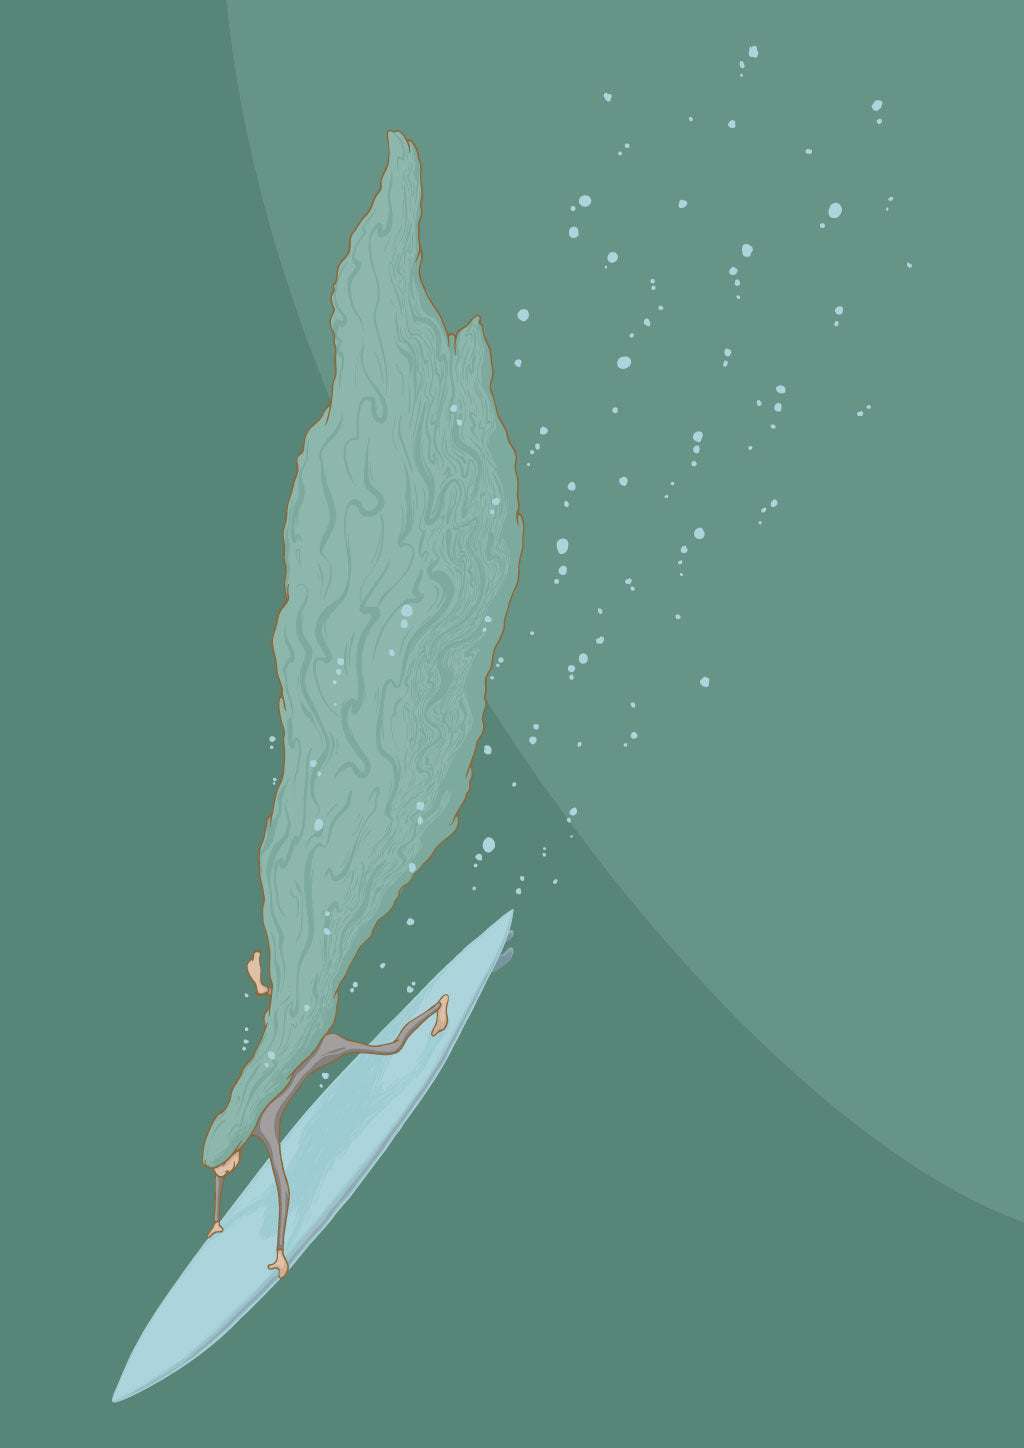 """Deeper"" - digital illustration. Waves of consequence require commitment to going further, deeper..."